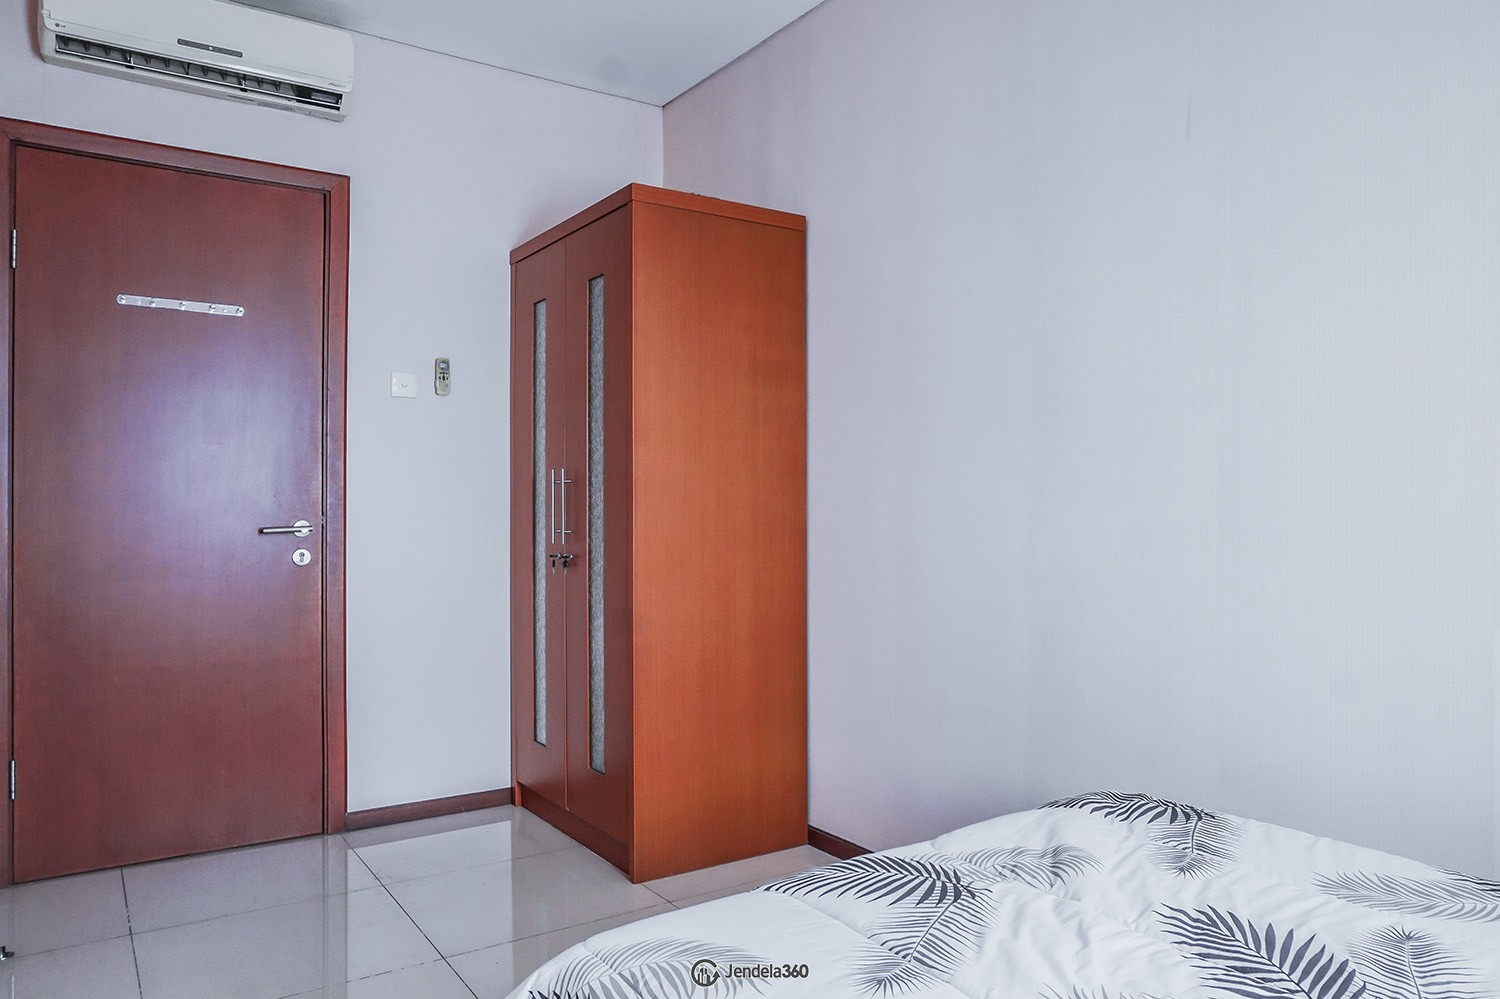 Bedroom 2 Thamrin Residence Apartment